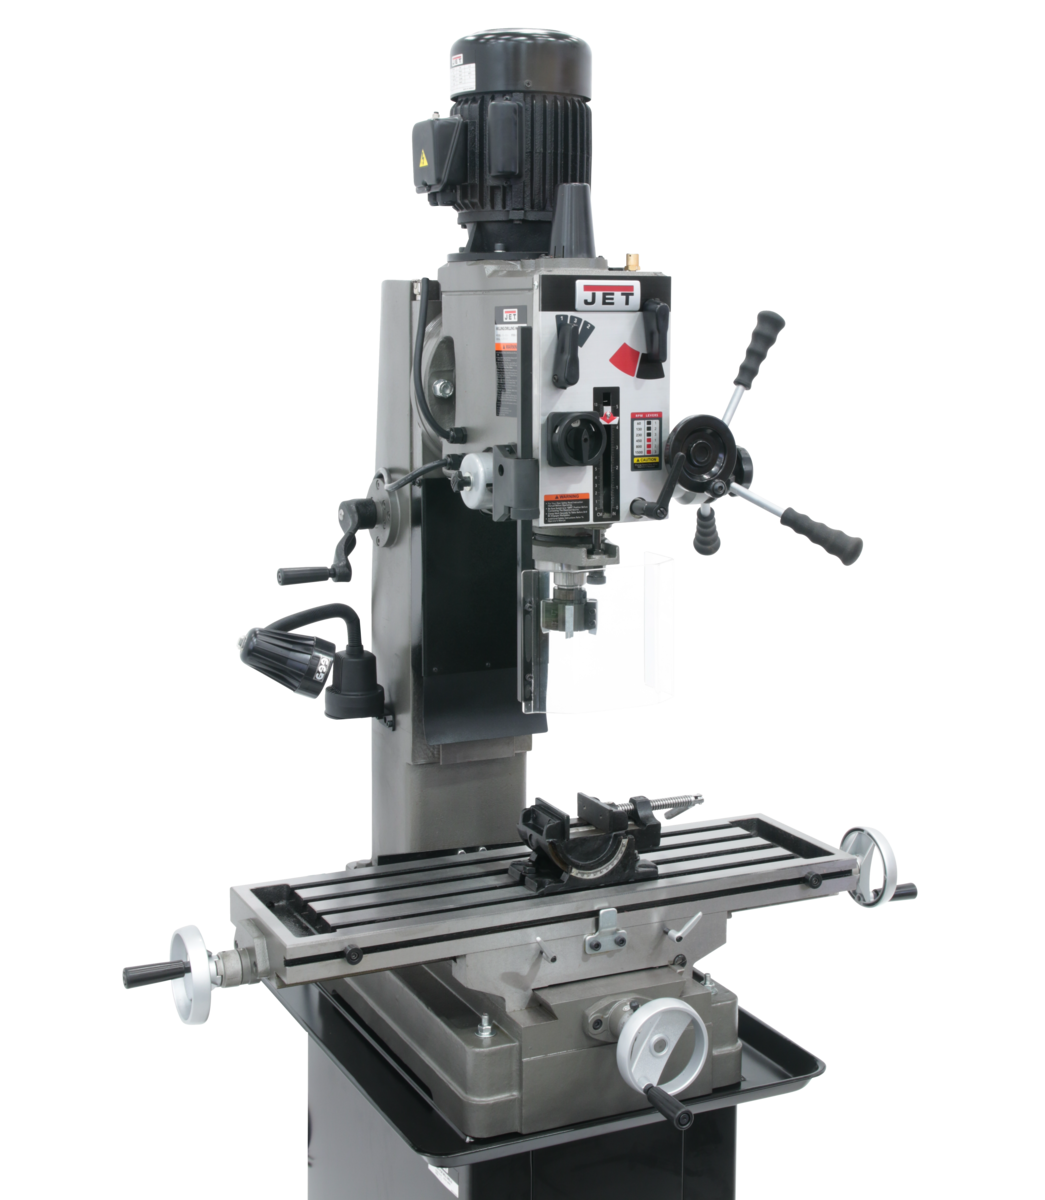 JMD-45GH Geared Head Square Column Mill/Drill with Newall DP700 2-Axis DRO